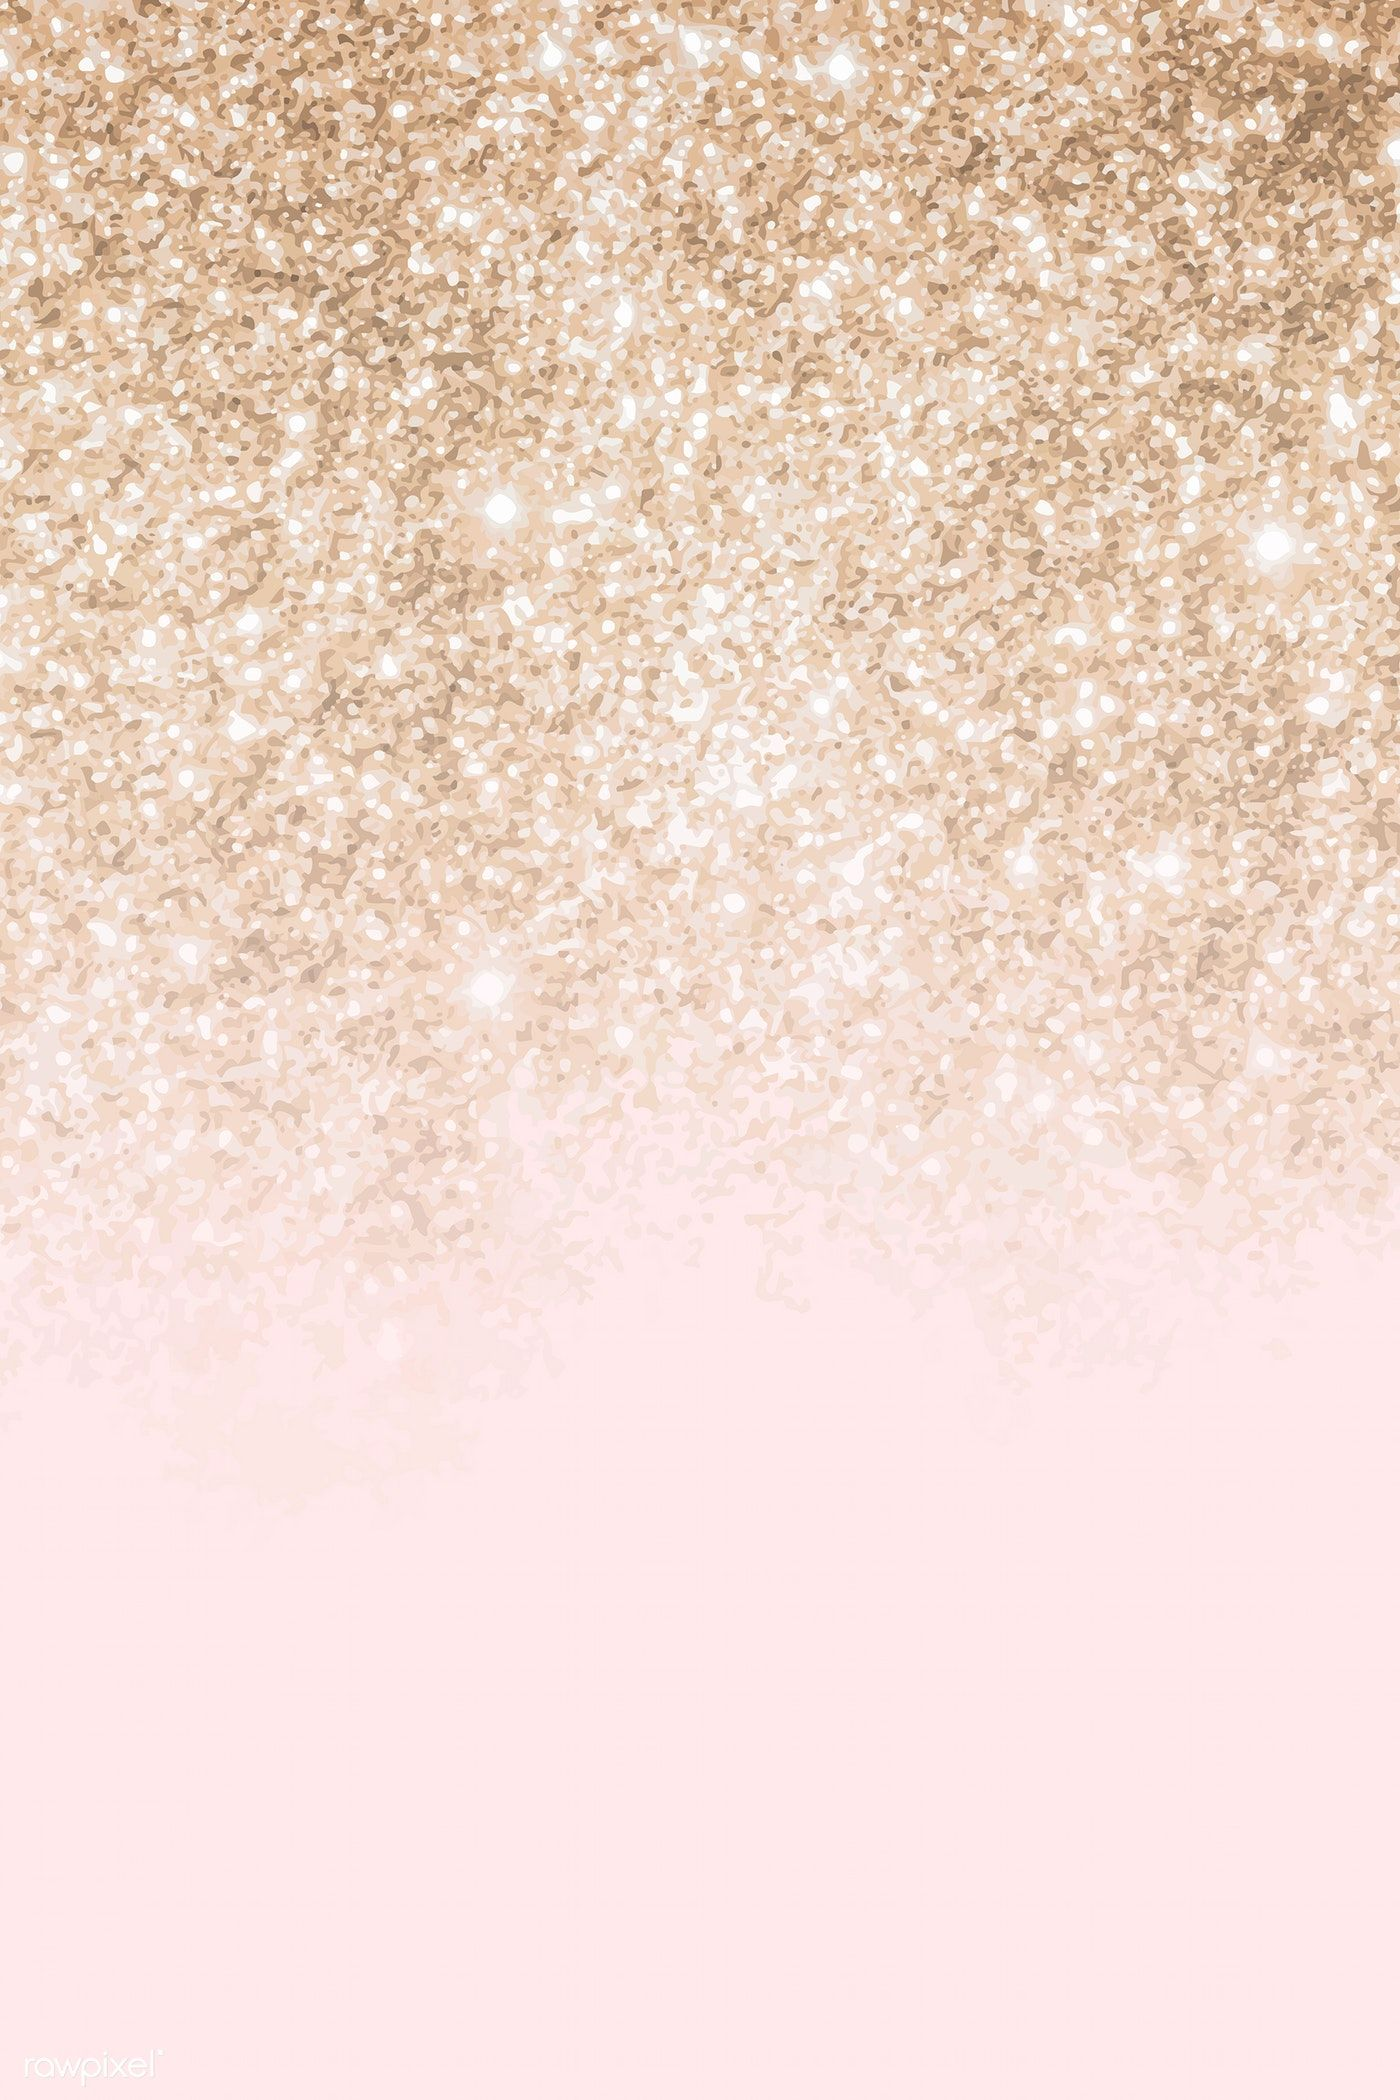 Download Premium Illustration Of Pink And Gold Glittery Pattern